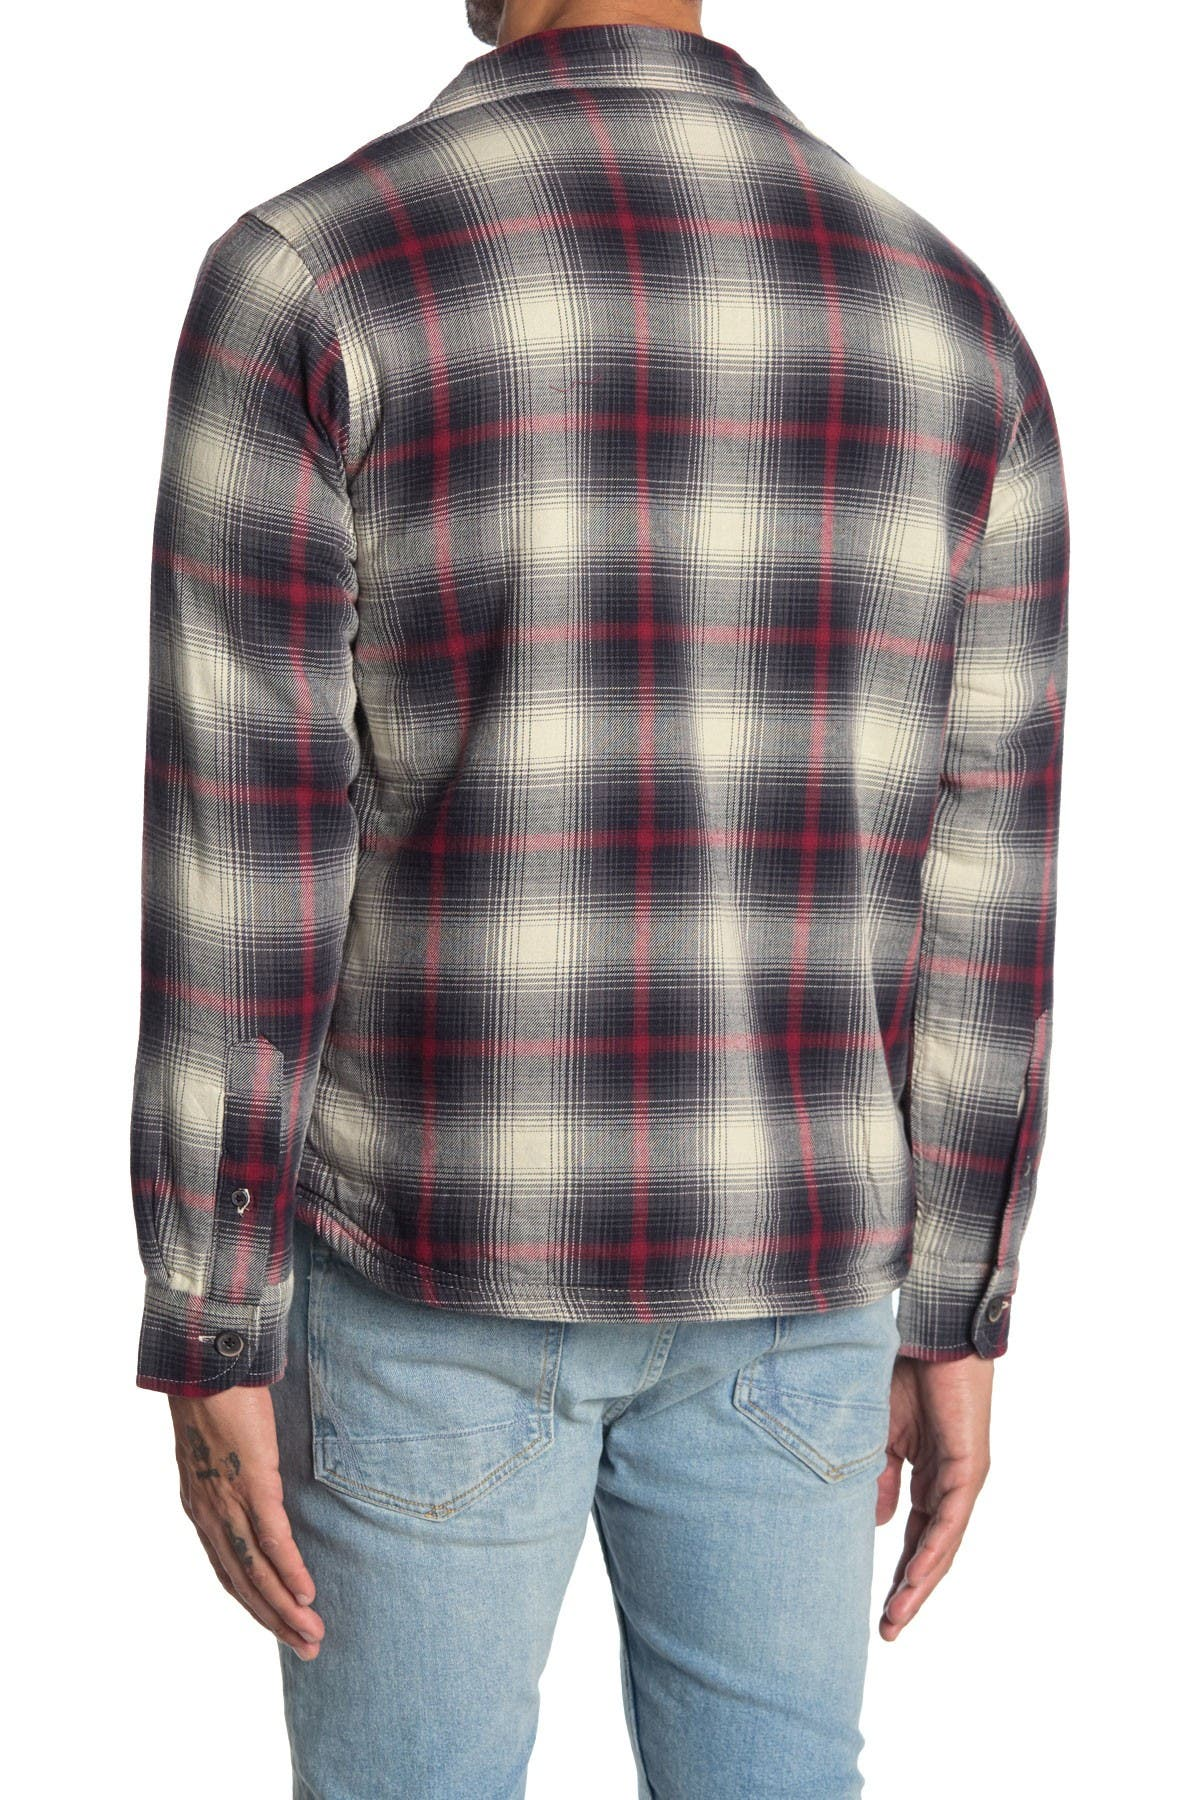 Image of Tailor Vintage Faux Shearling Lined Plaid Shirt Jacket